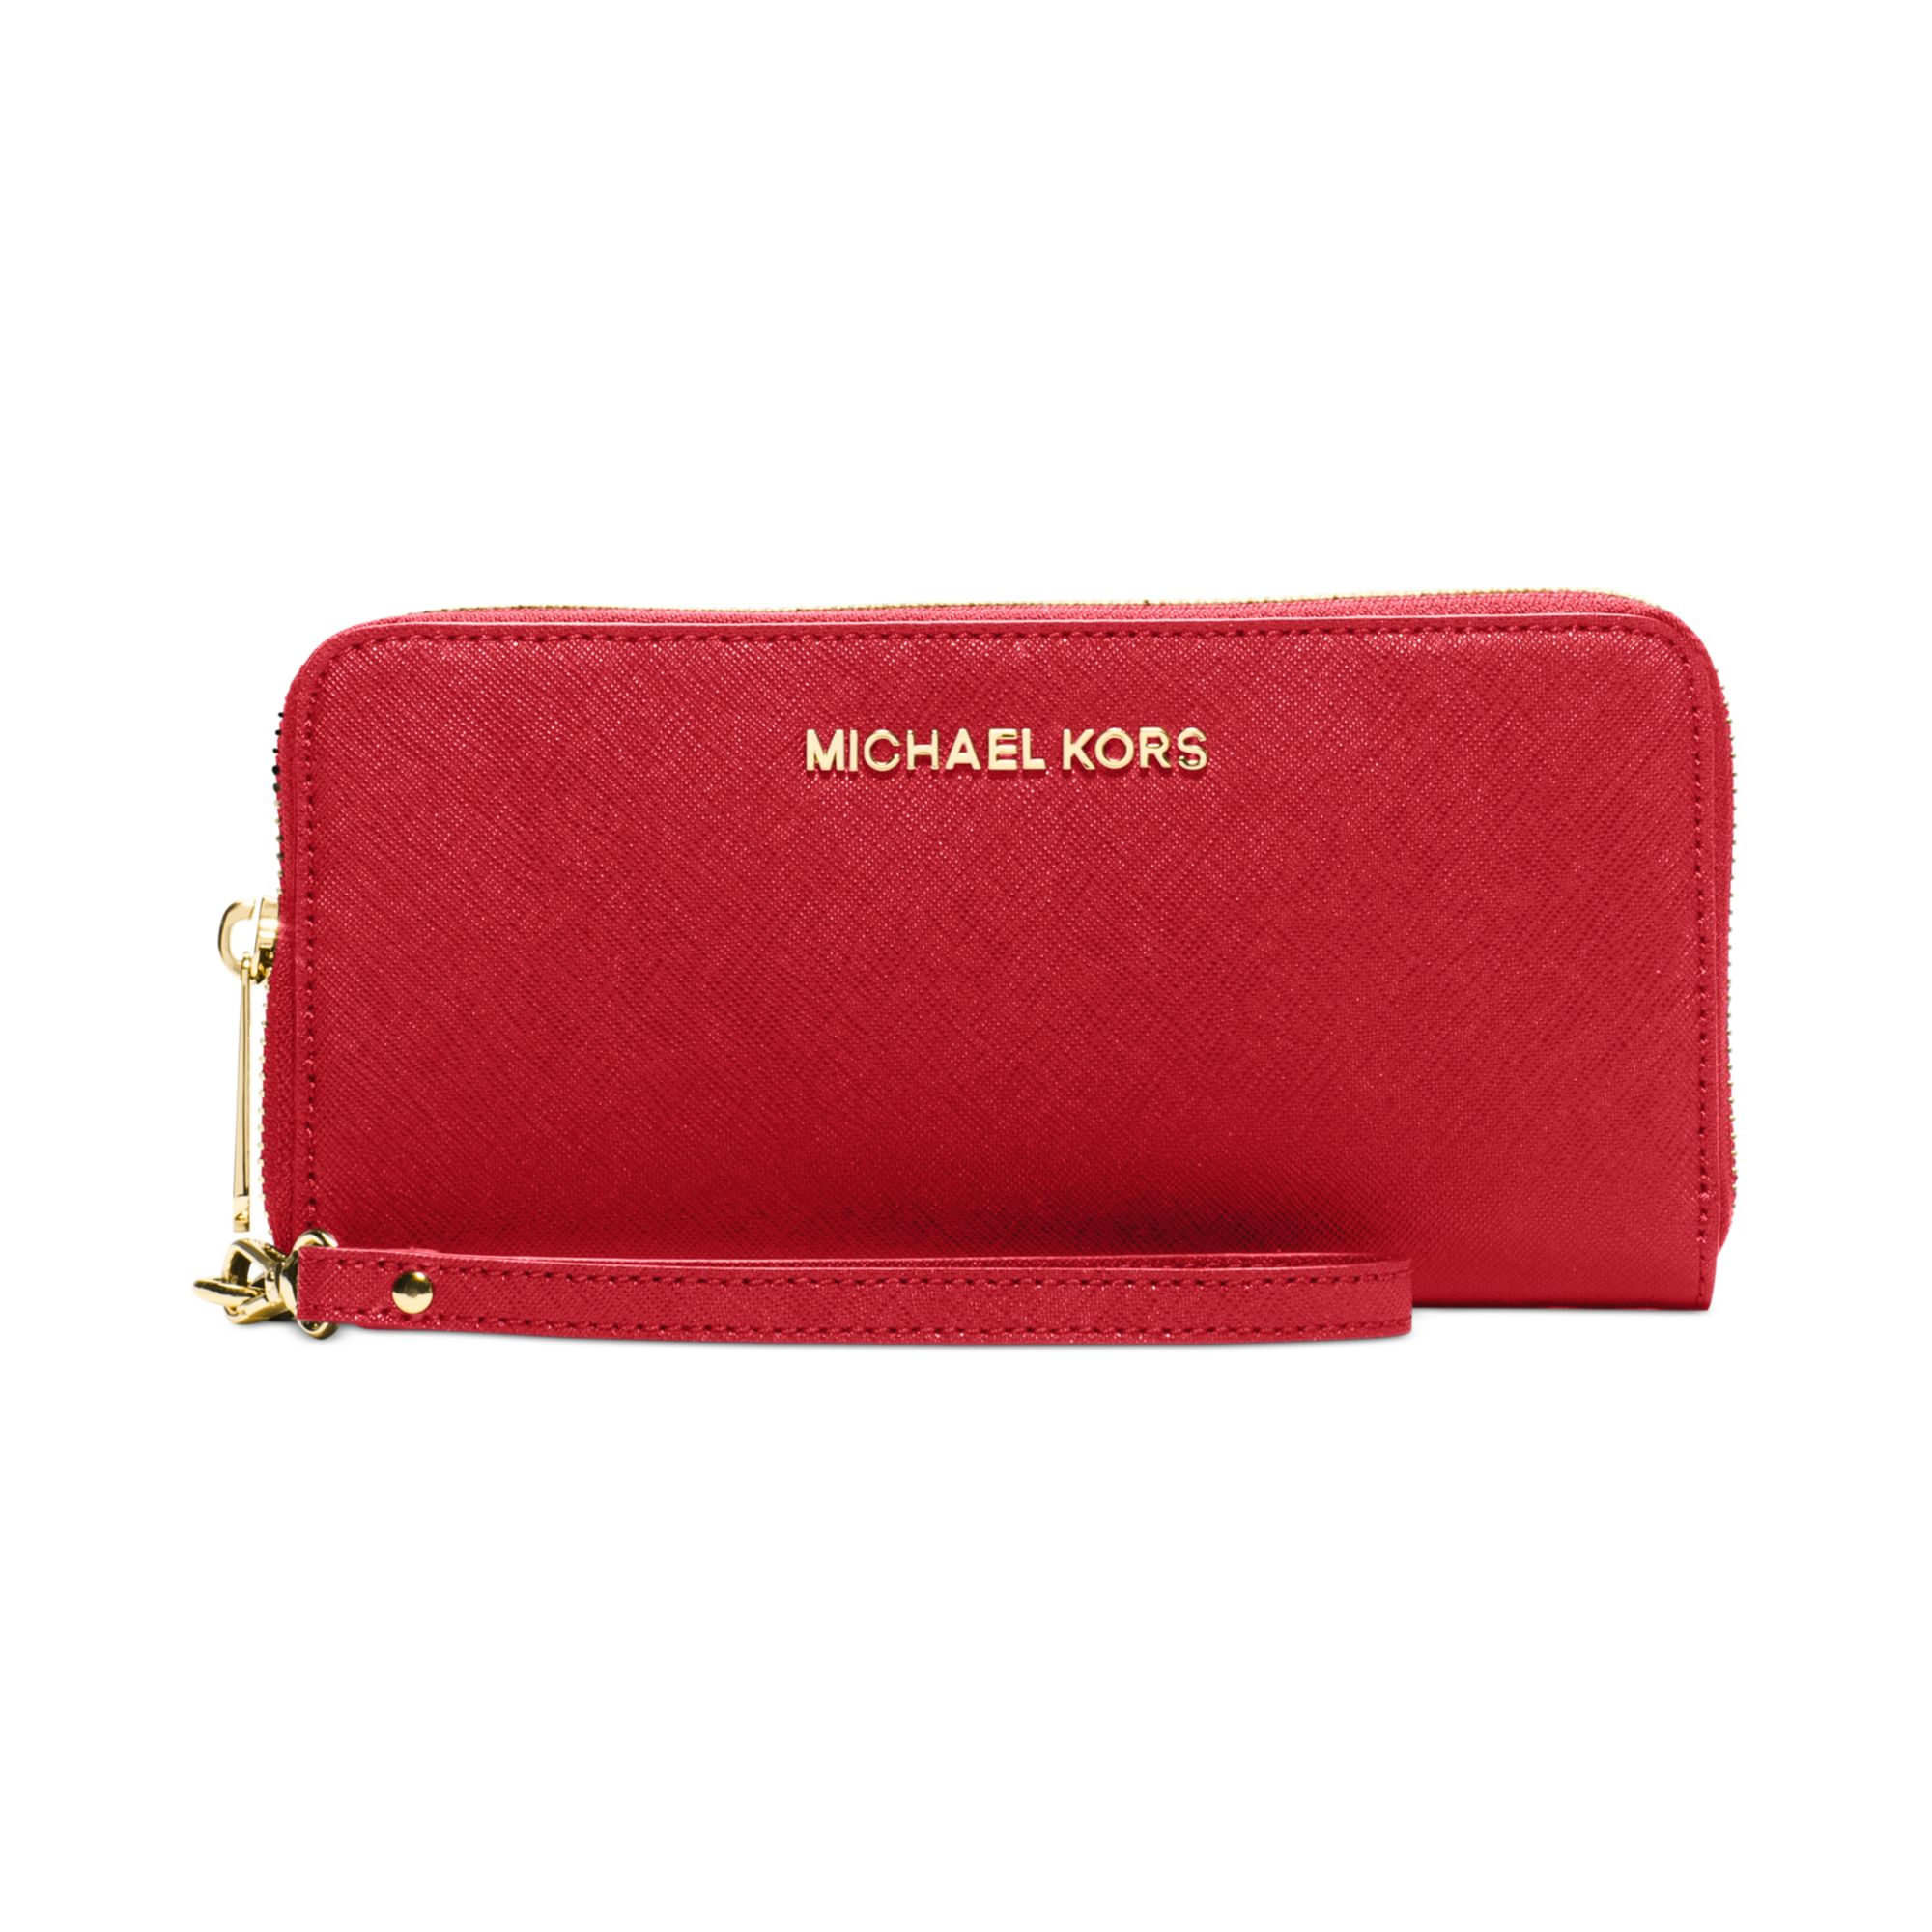 1c8a75482a Lyst - Michael Kors Michael Macy S Exclusive Jet Set Travel Large ...